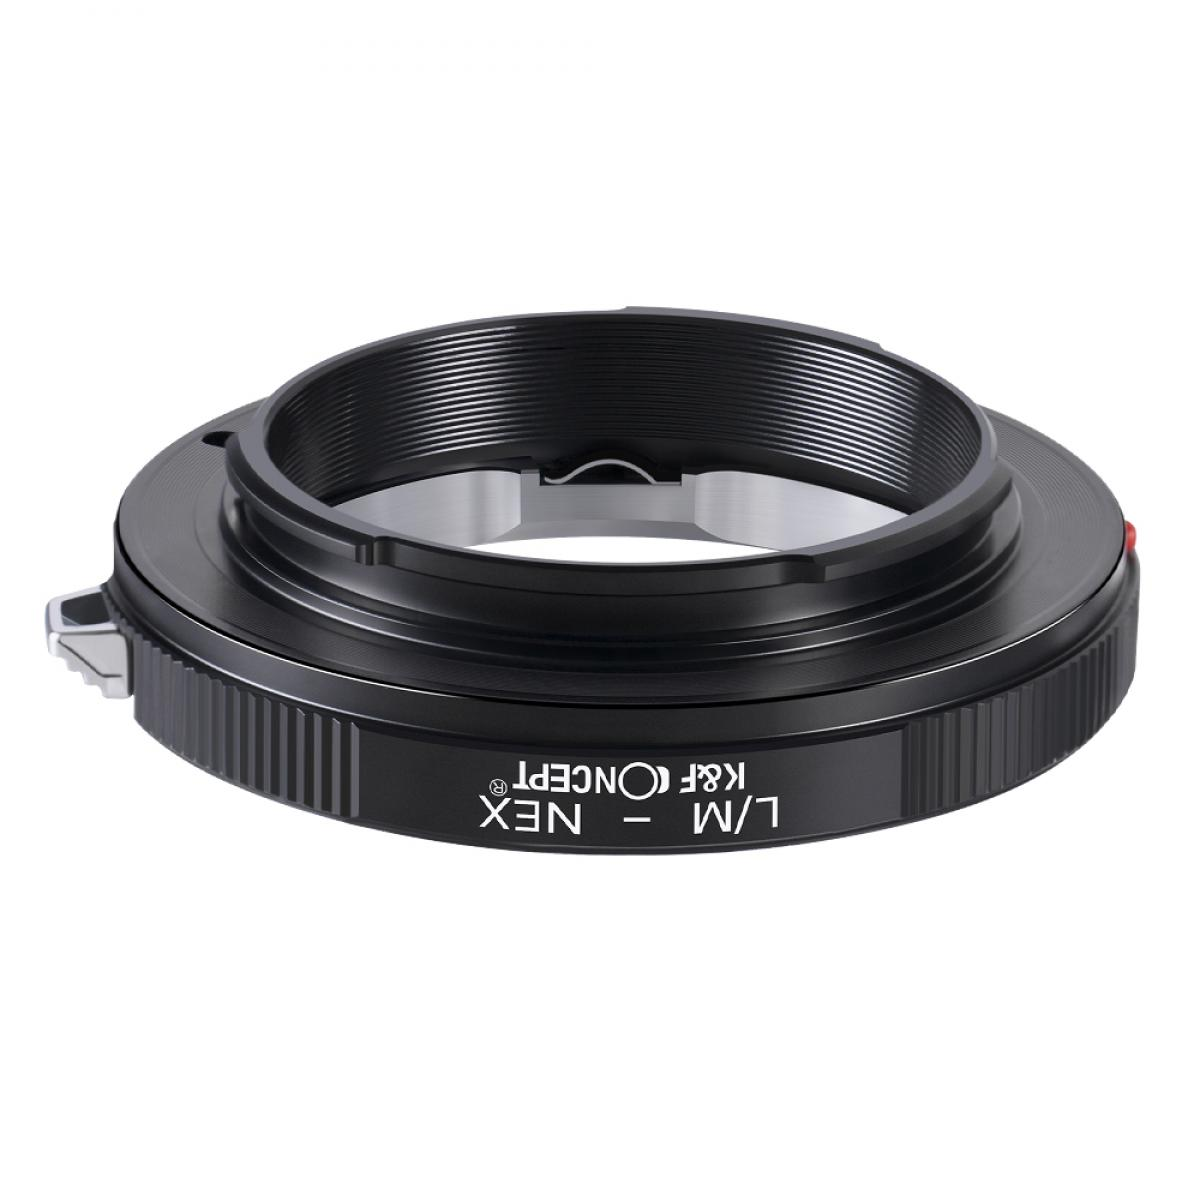 Leica M Lenses to Sony E Mount Camera Adapter